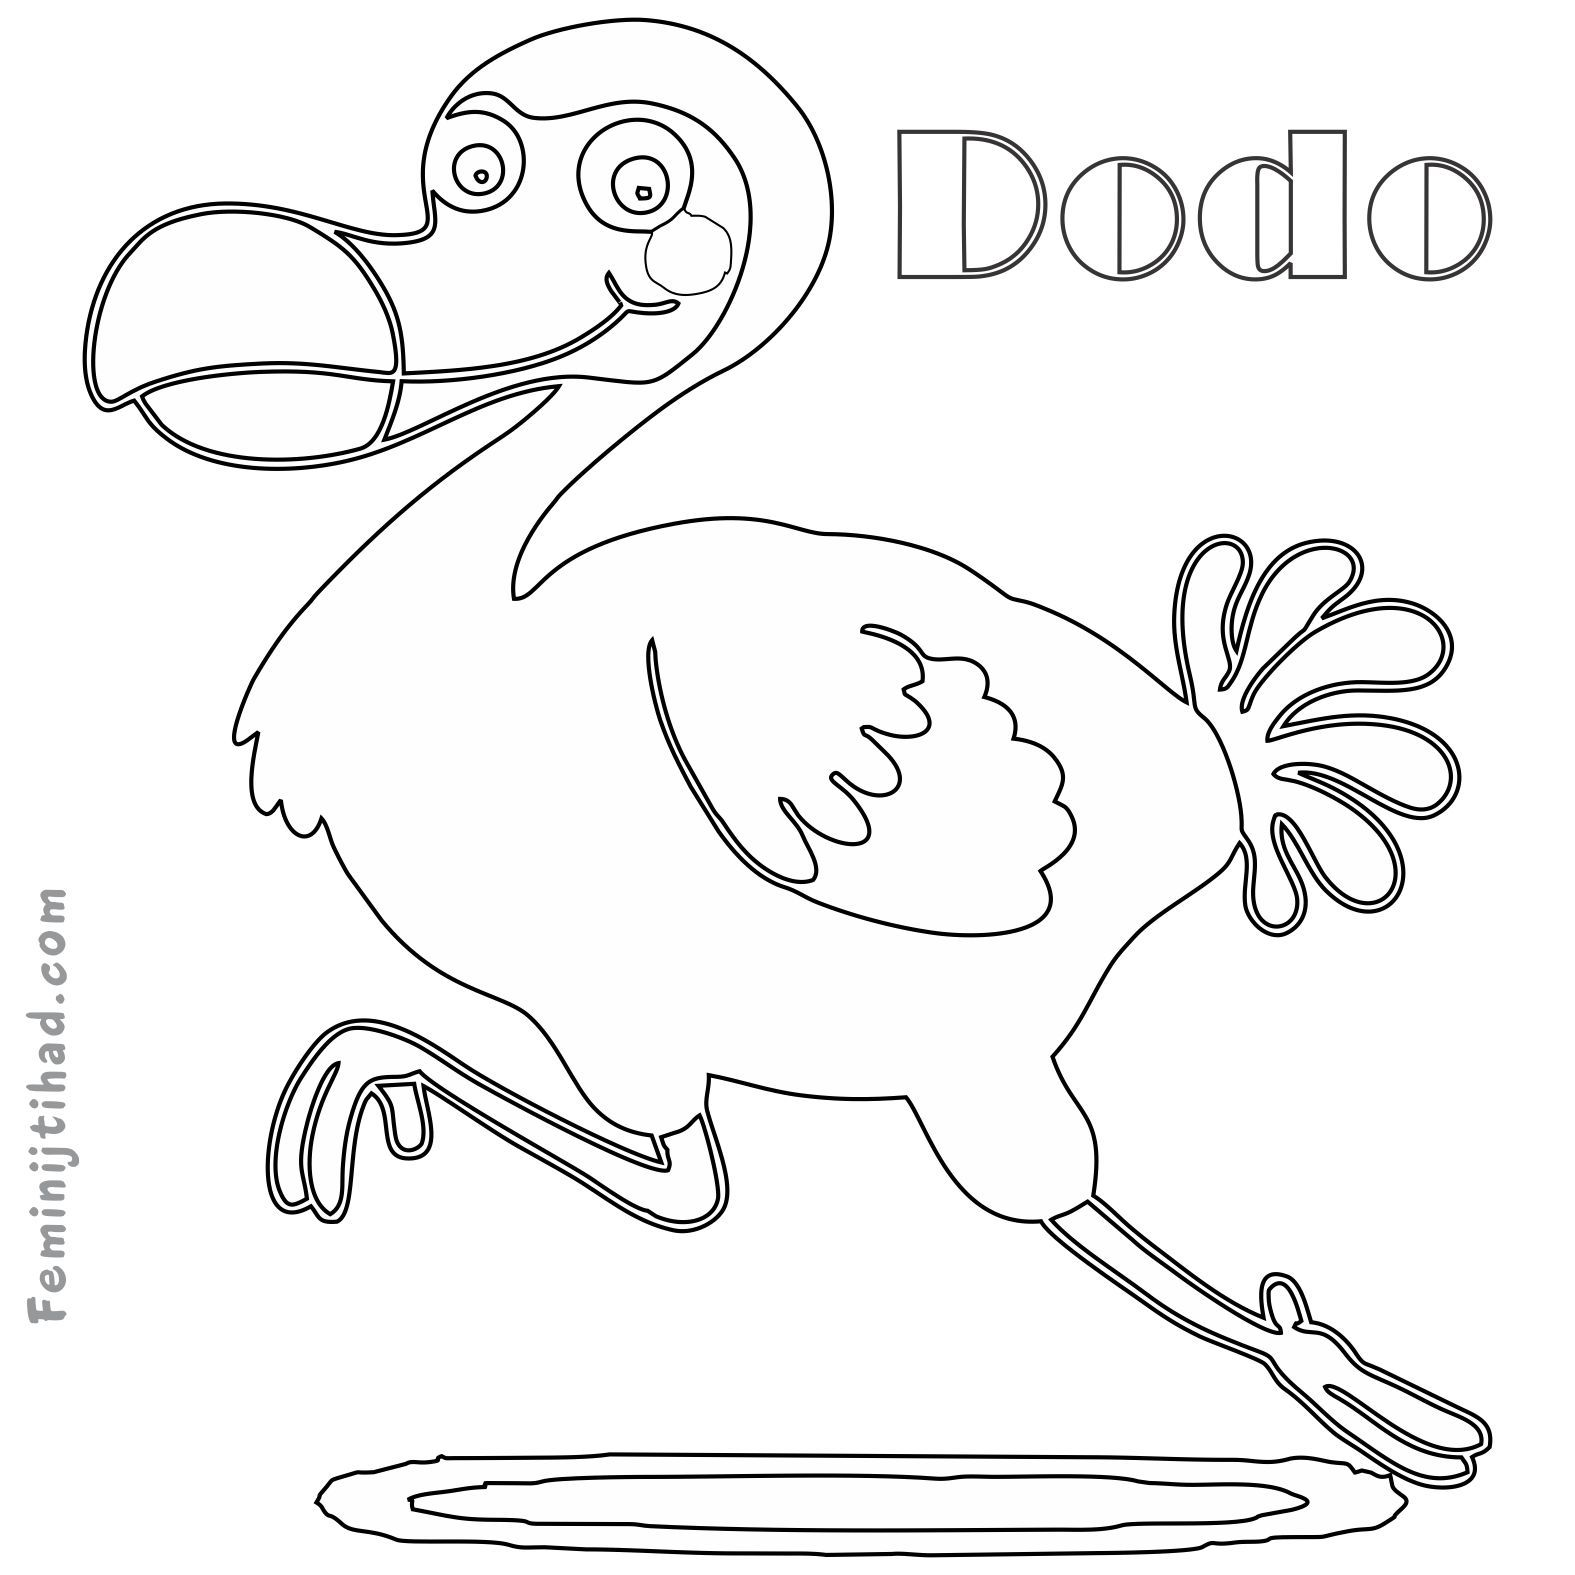 Printable Dodo Coloring Pages